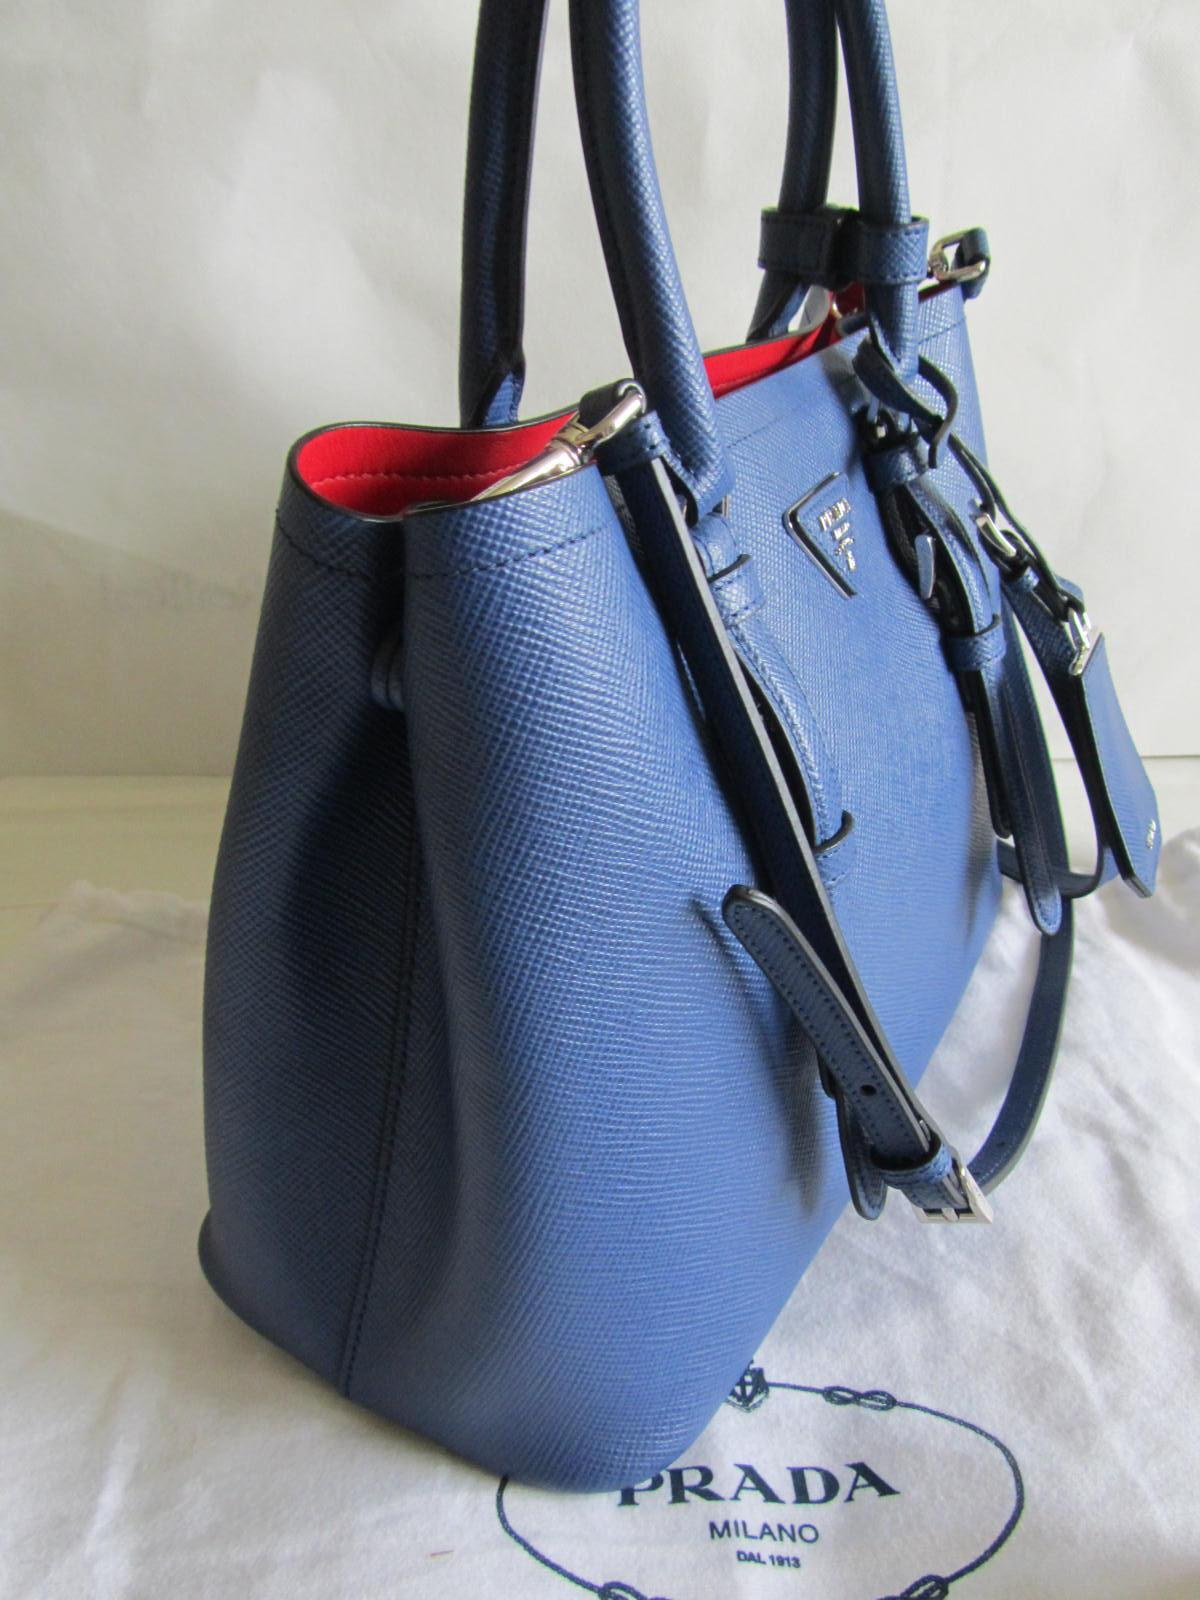 3d95af6a1d55 2390 0a672 a1684; spain prada saffiano cuir tote in navy blue.  1234567891011 bbfc4 639c1